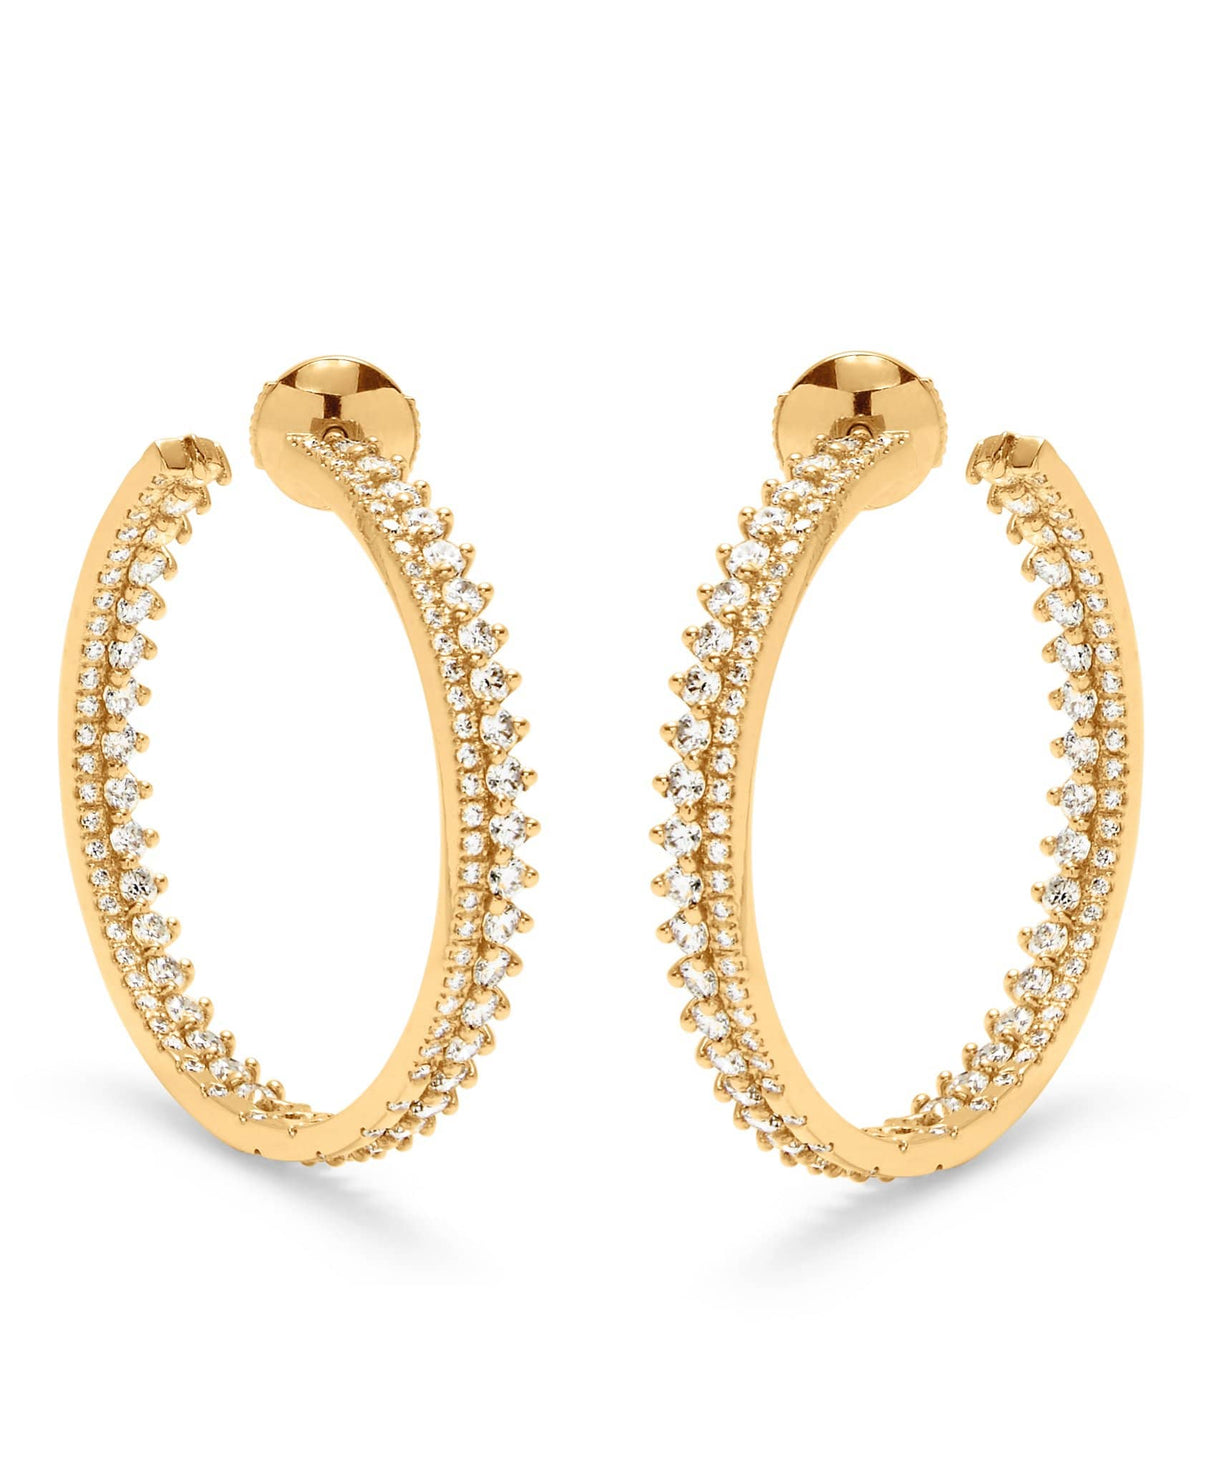 Lucie Hoops: Discover Luxury Fine Jewelry | Nouvel Heritage || Yellow Gold